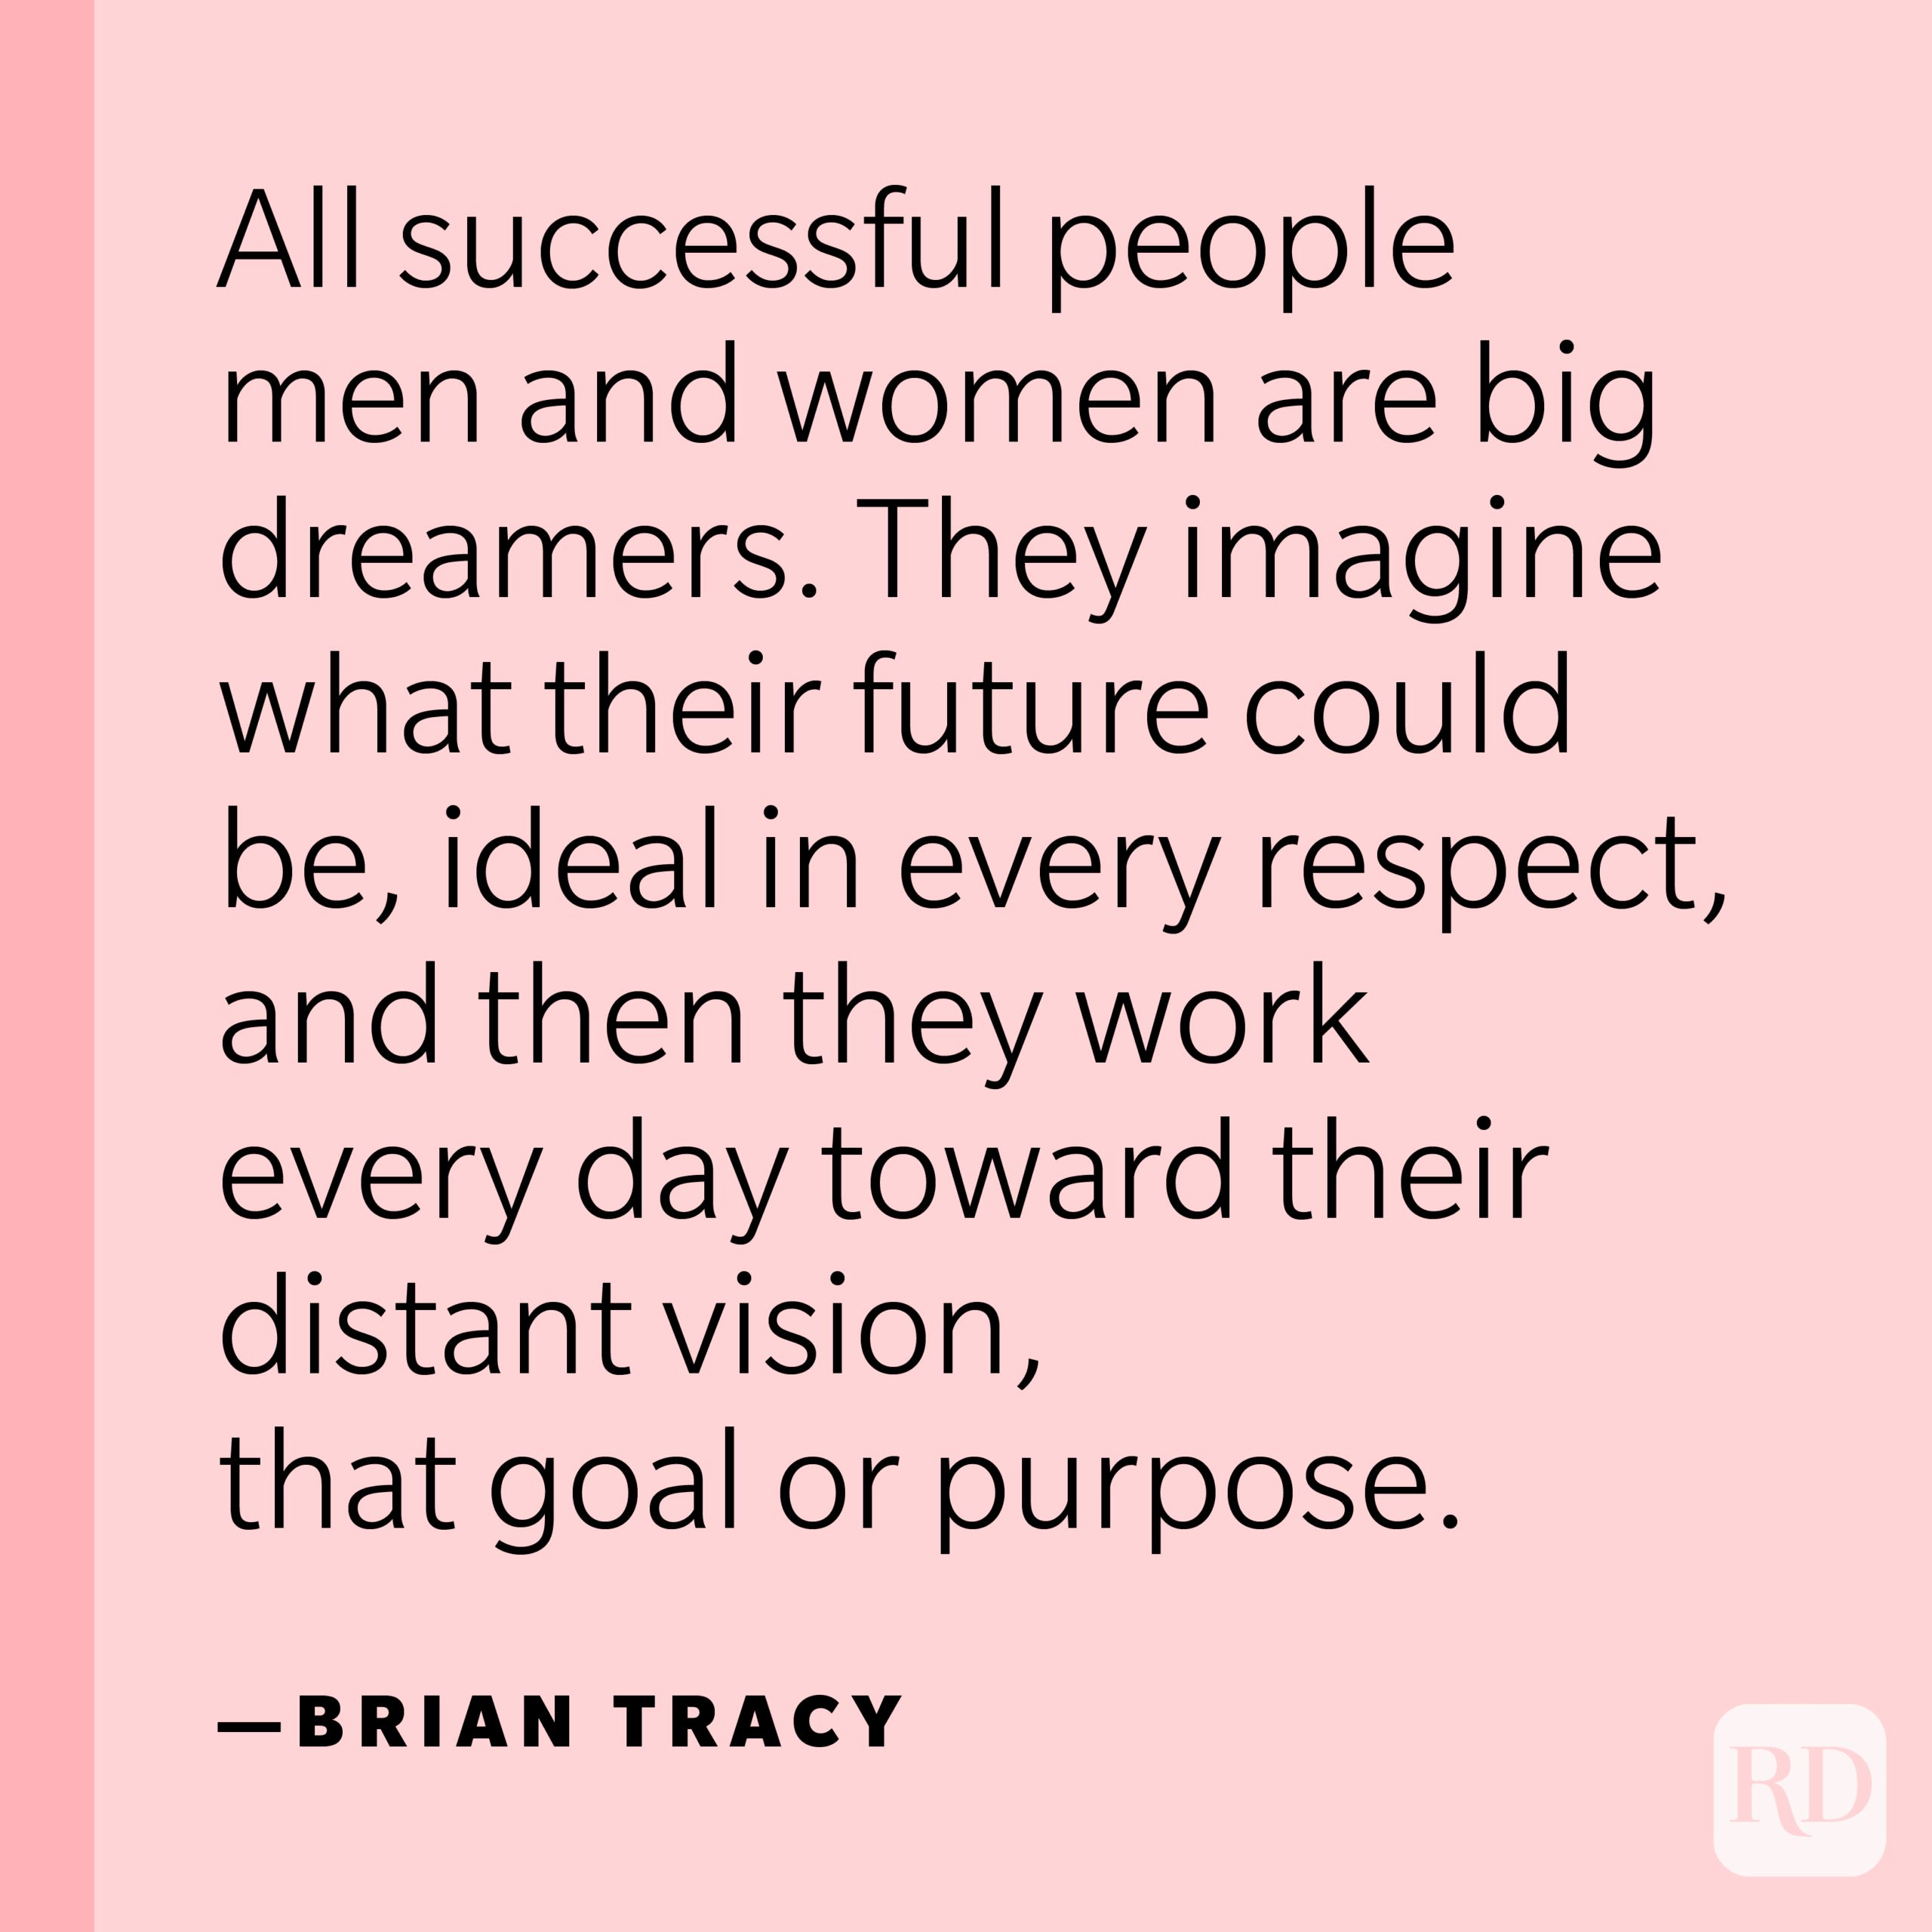 """""""All successful people men and women are big dreamers. They imagine what their future could be, ideal in every respect, and then they work every day toward their distant vision, that goal or purpose."""" —Brian Tracy."""